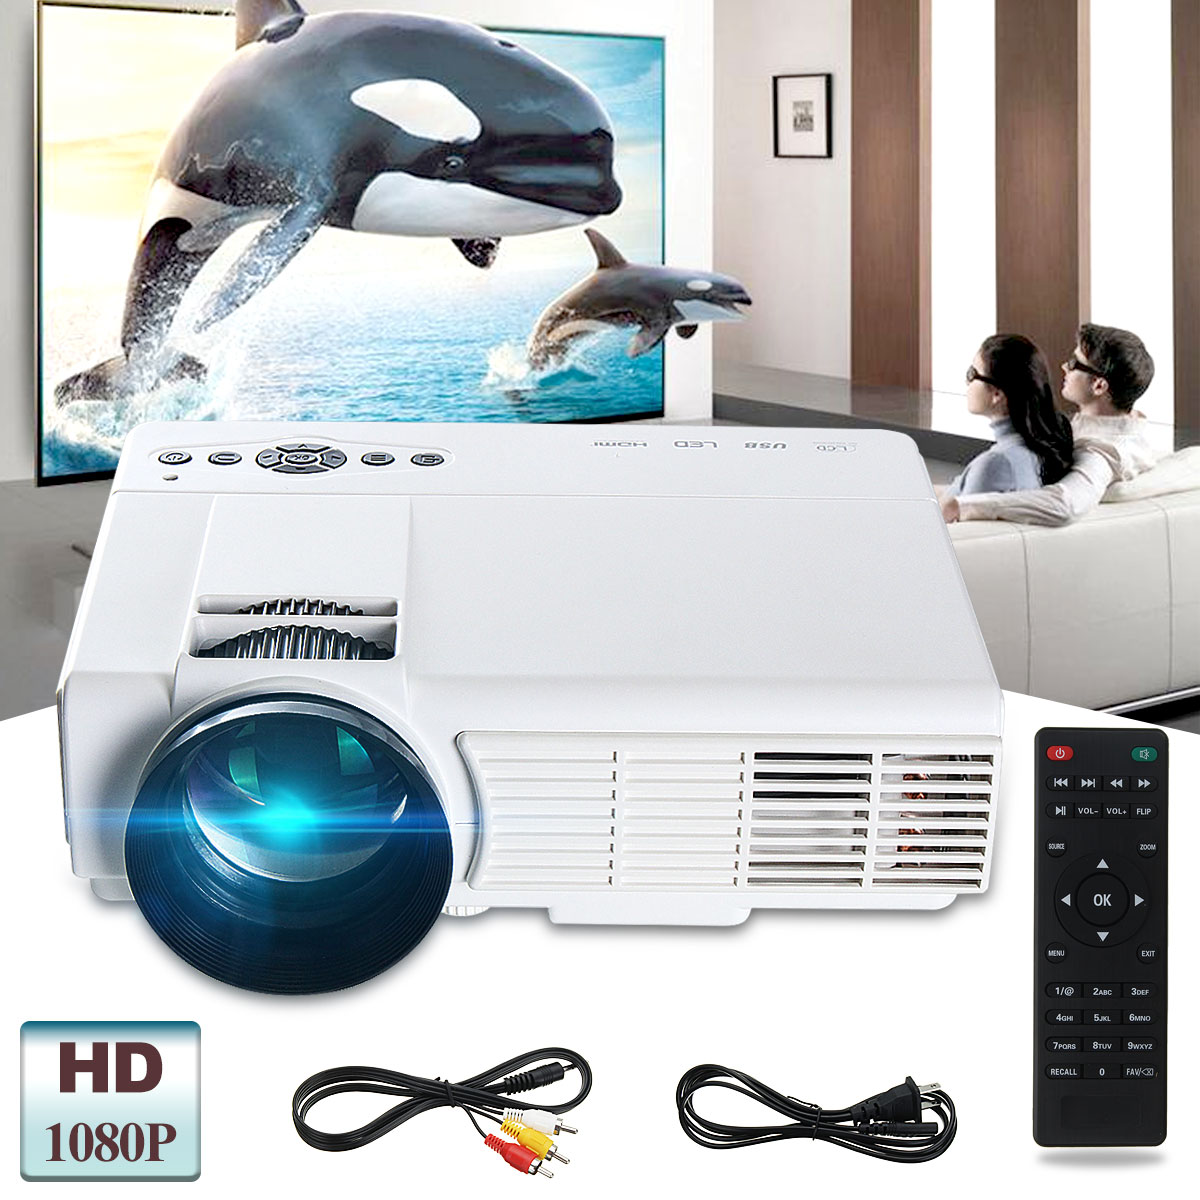 Powerful Q5 3D HD 1080P 3000 Lumens 800 x 480 Resolution Home Theater  Multimedia LED Projector